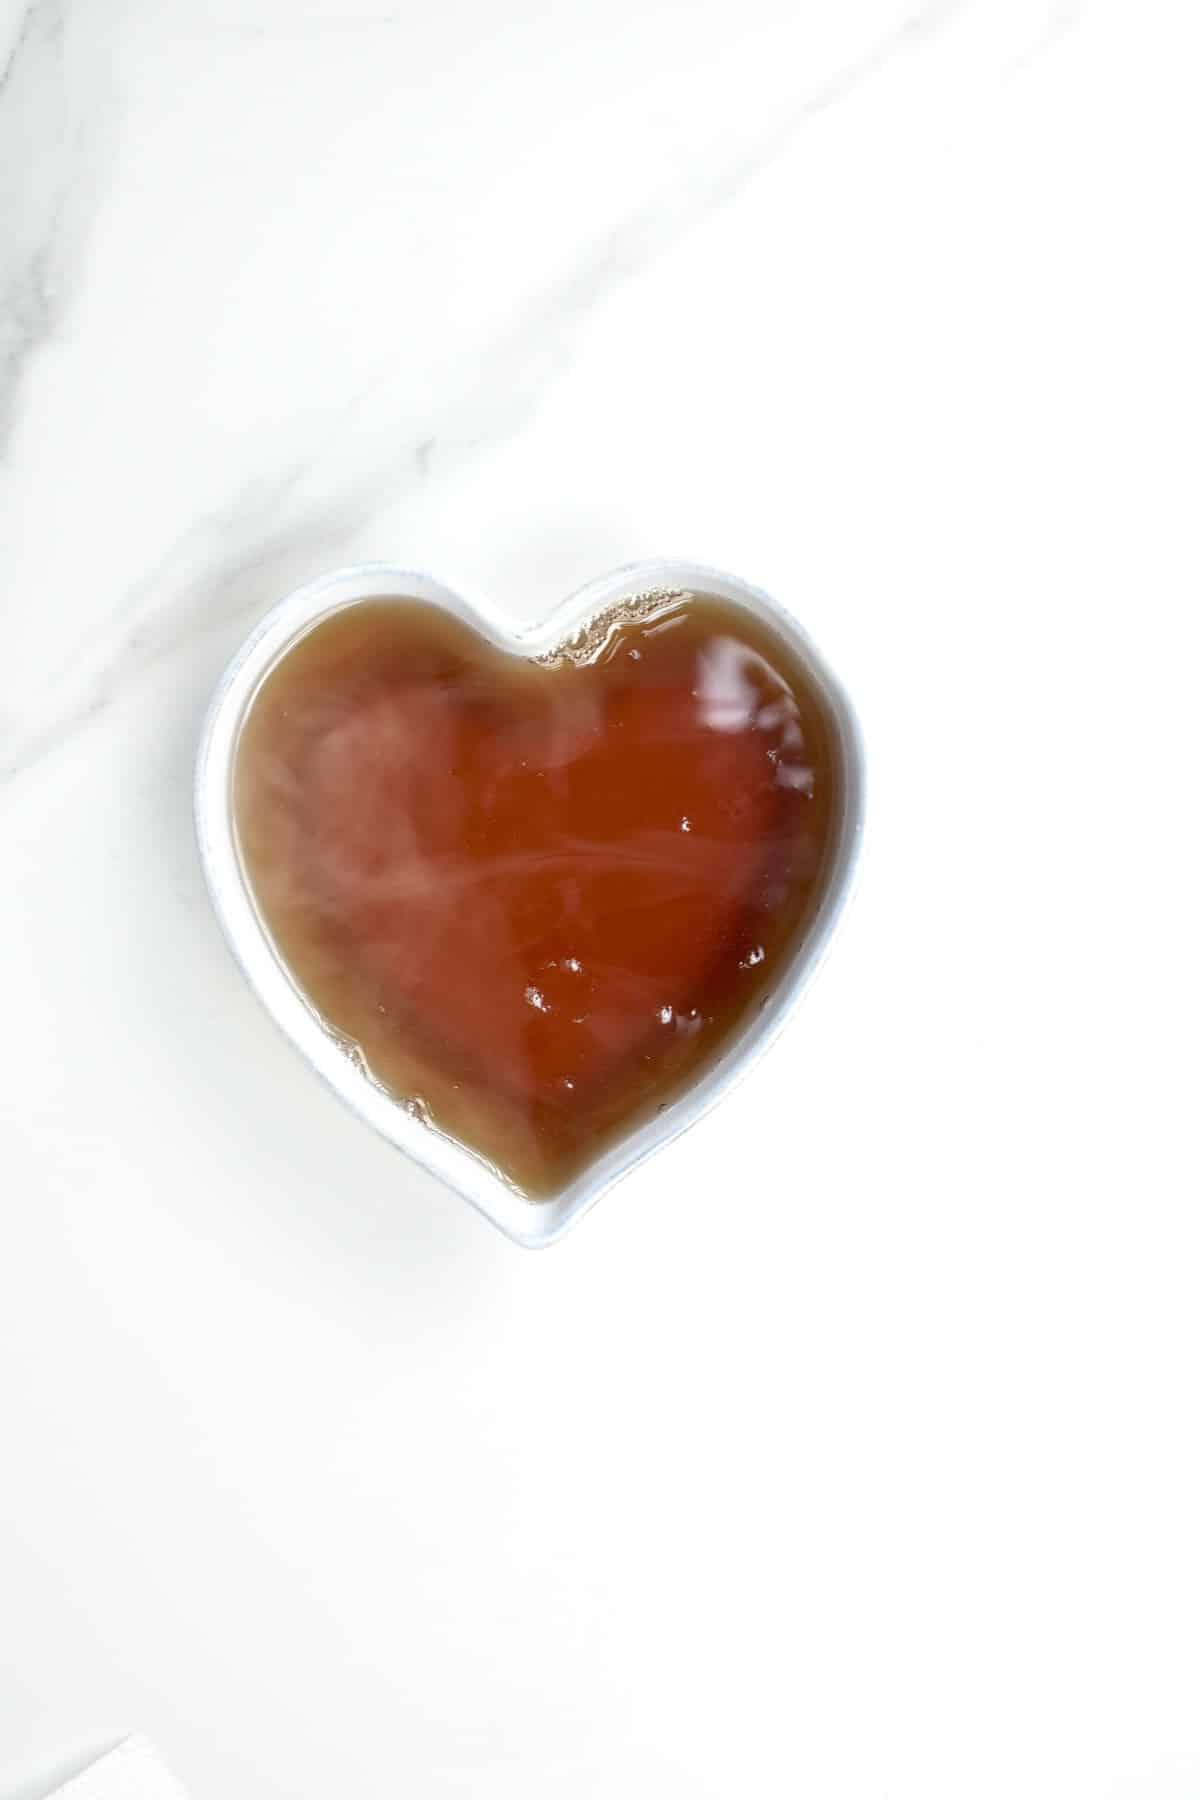 A heart shaped bowl with sugar syrup